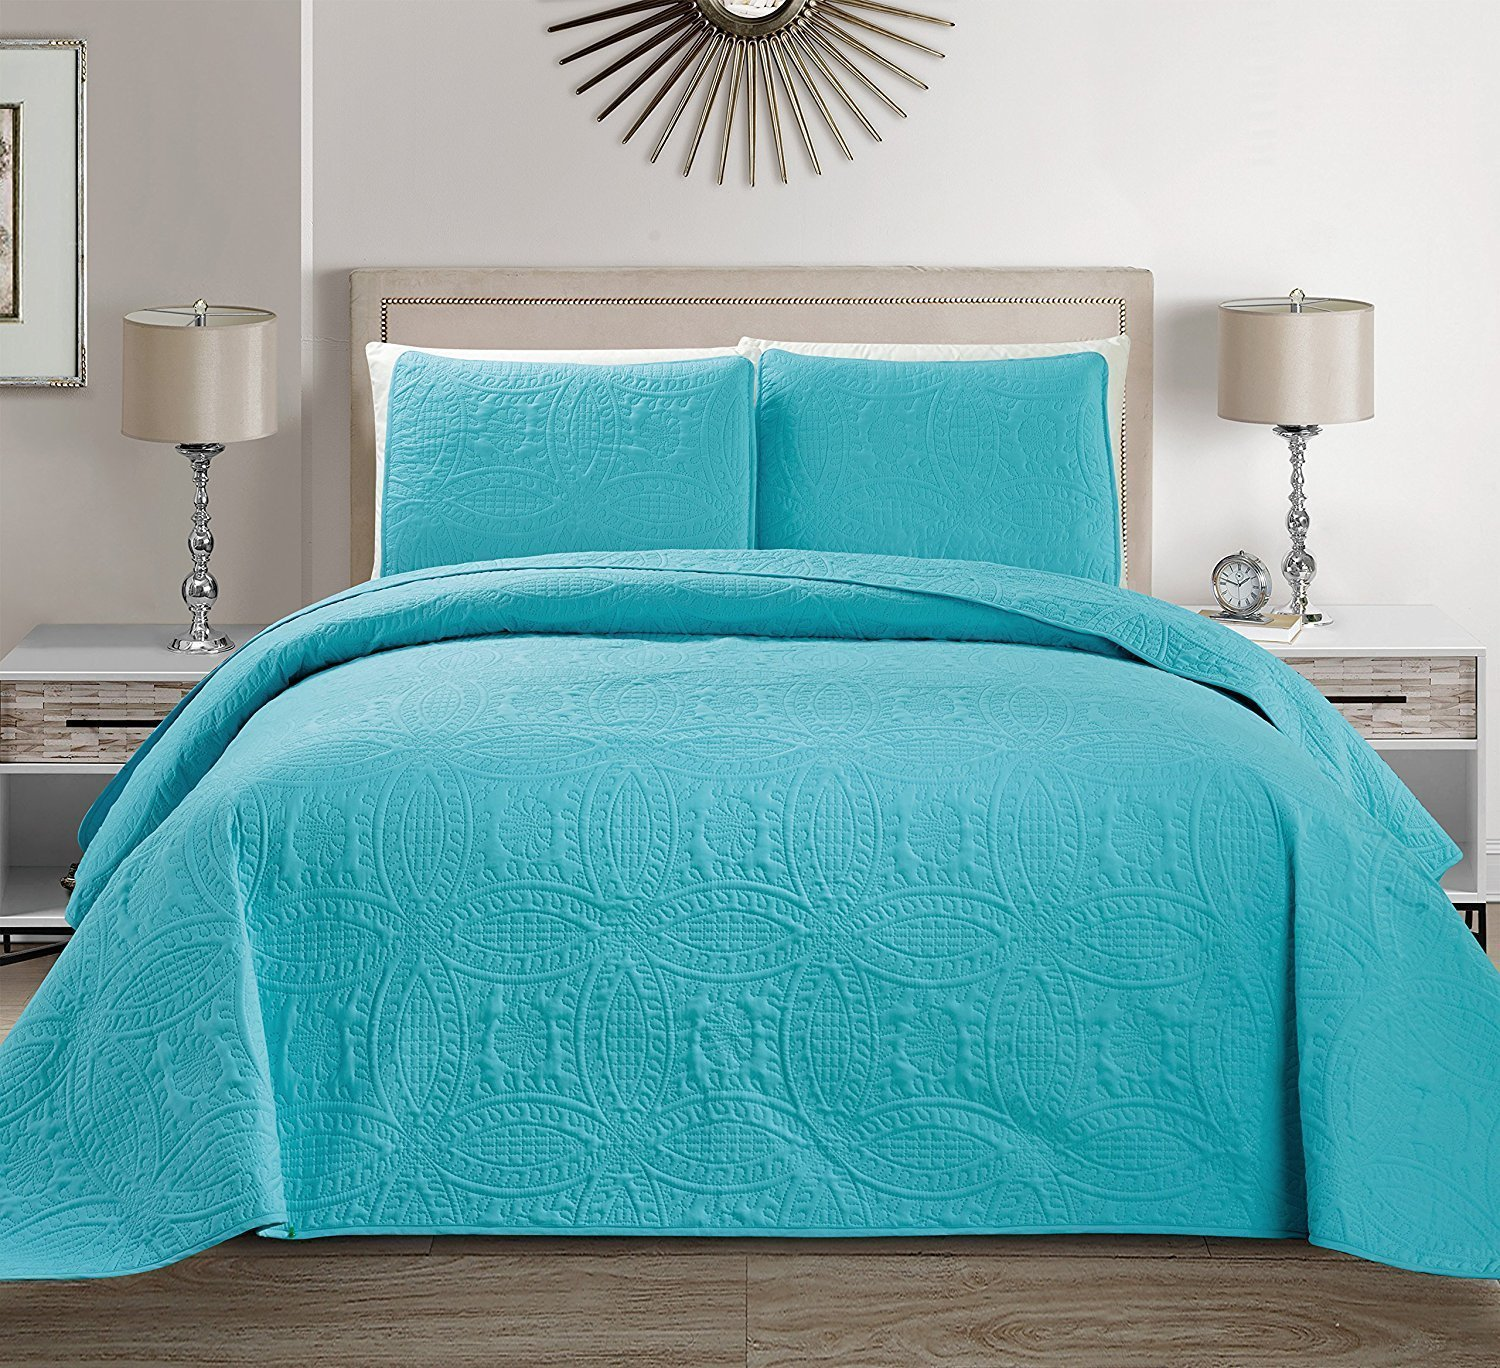 Fancy Collection 3pc King/California King Embossed Oversized Coverlet Bedspread Set Solid Turquoise/Baby Blue New